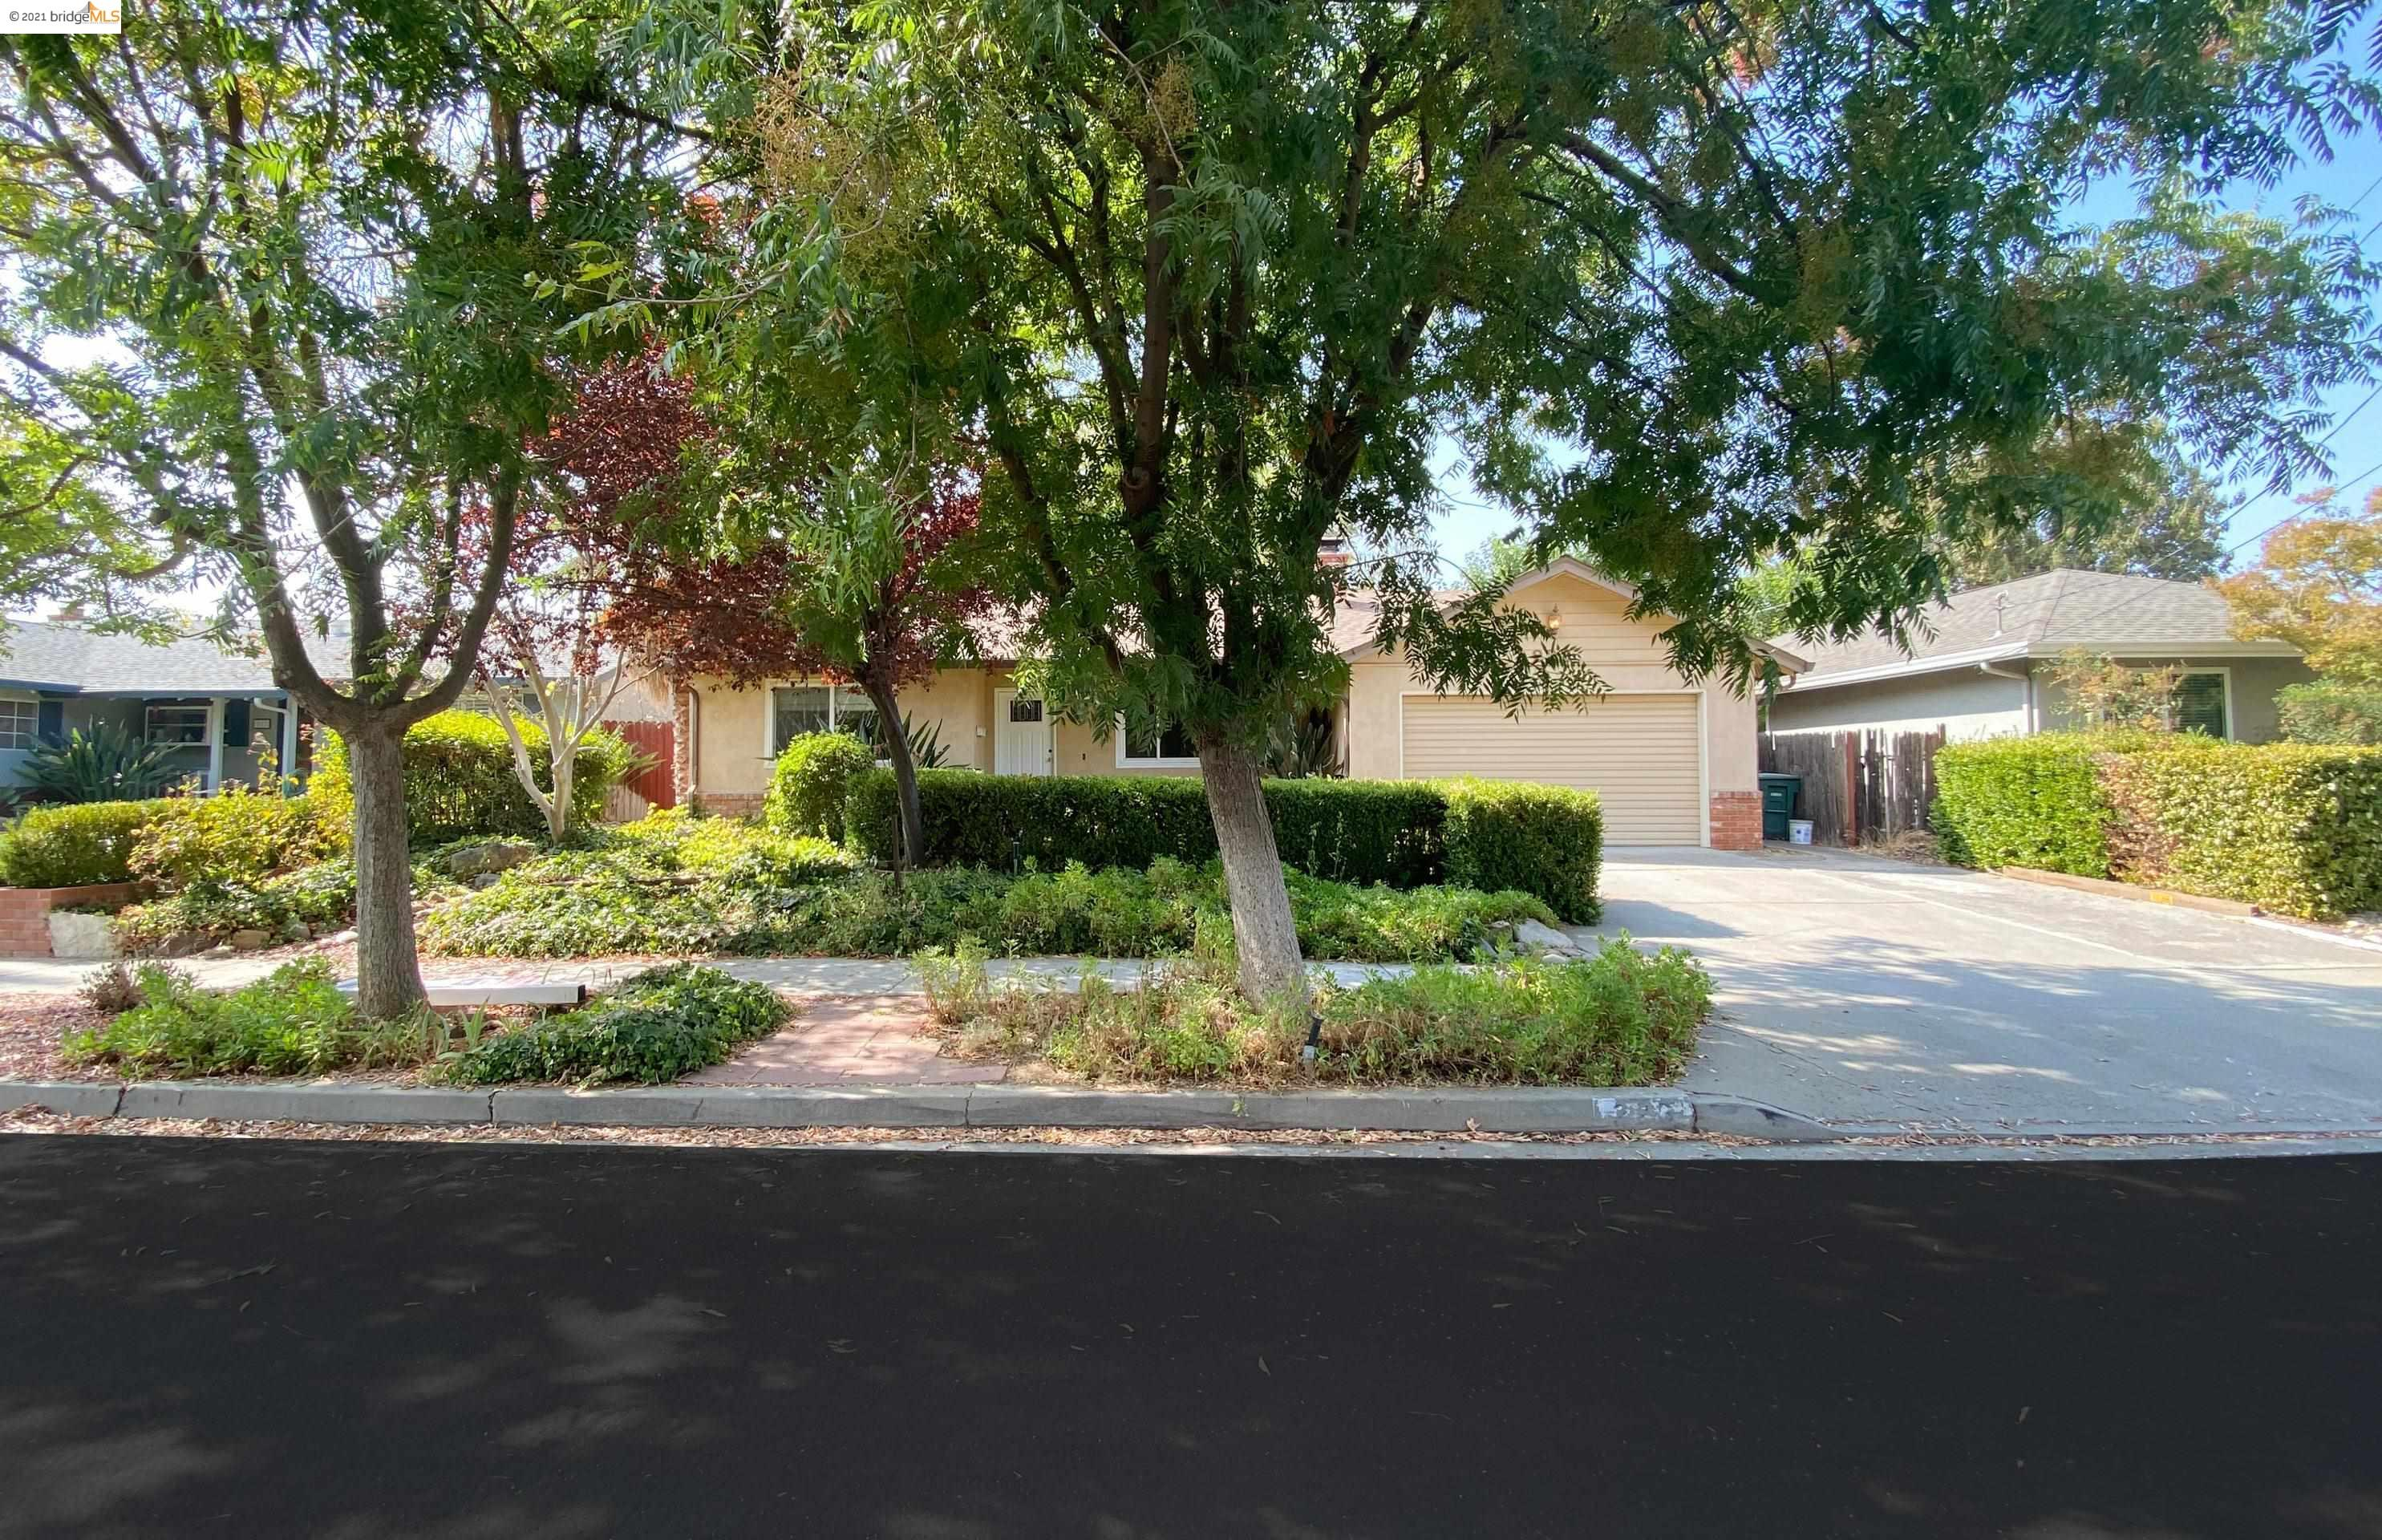 223 Pippo Ave, BRENTWOOD, CA 94513